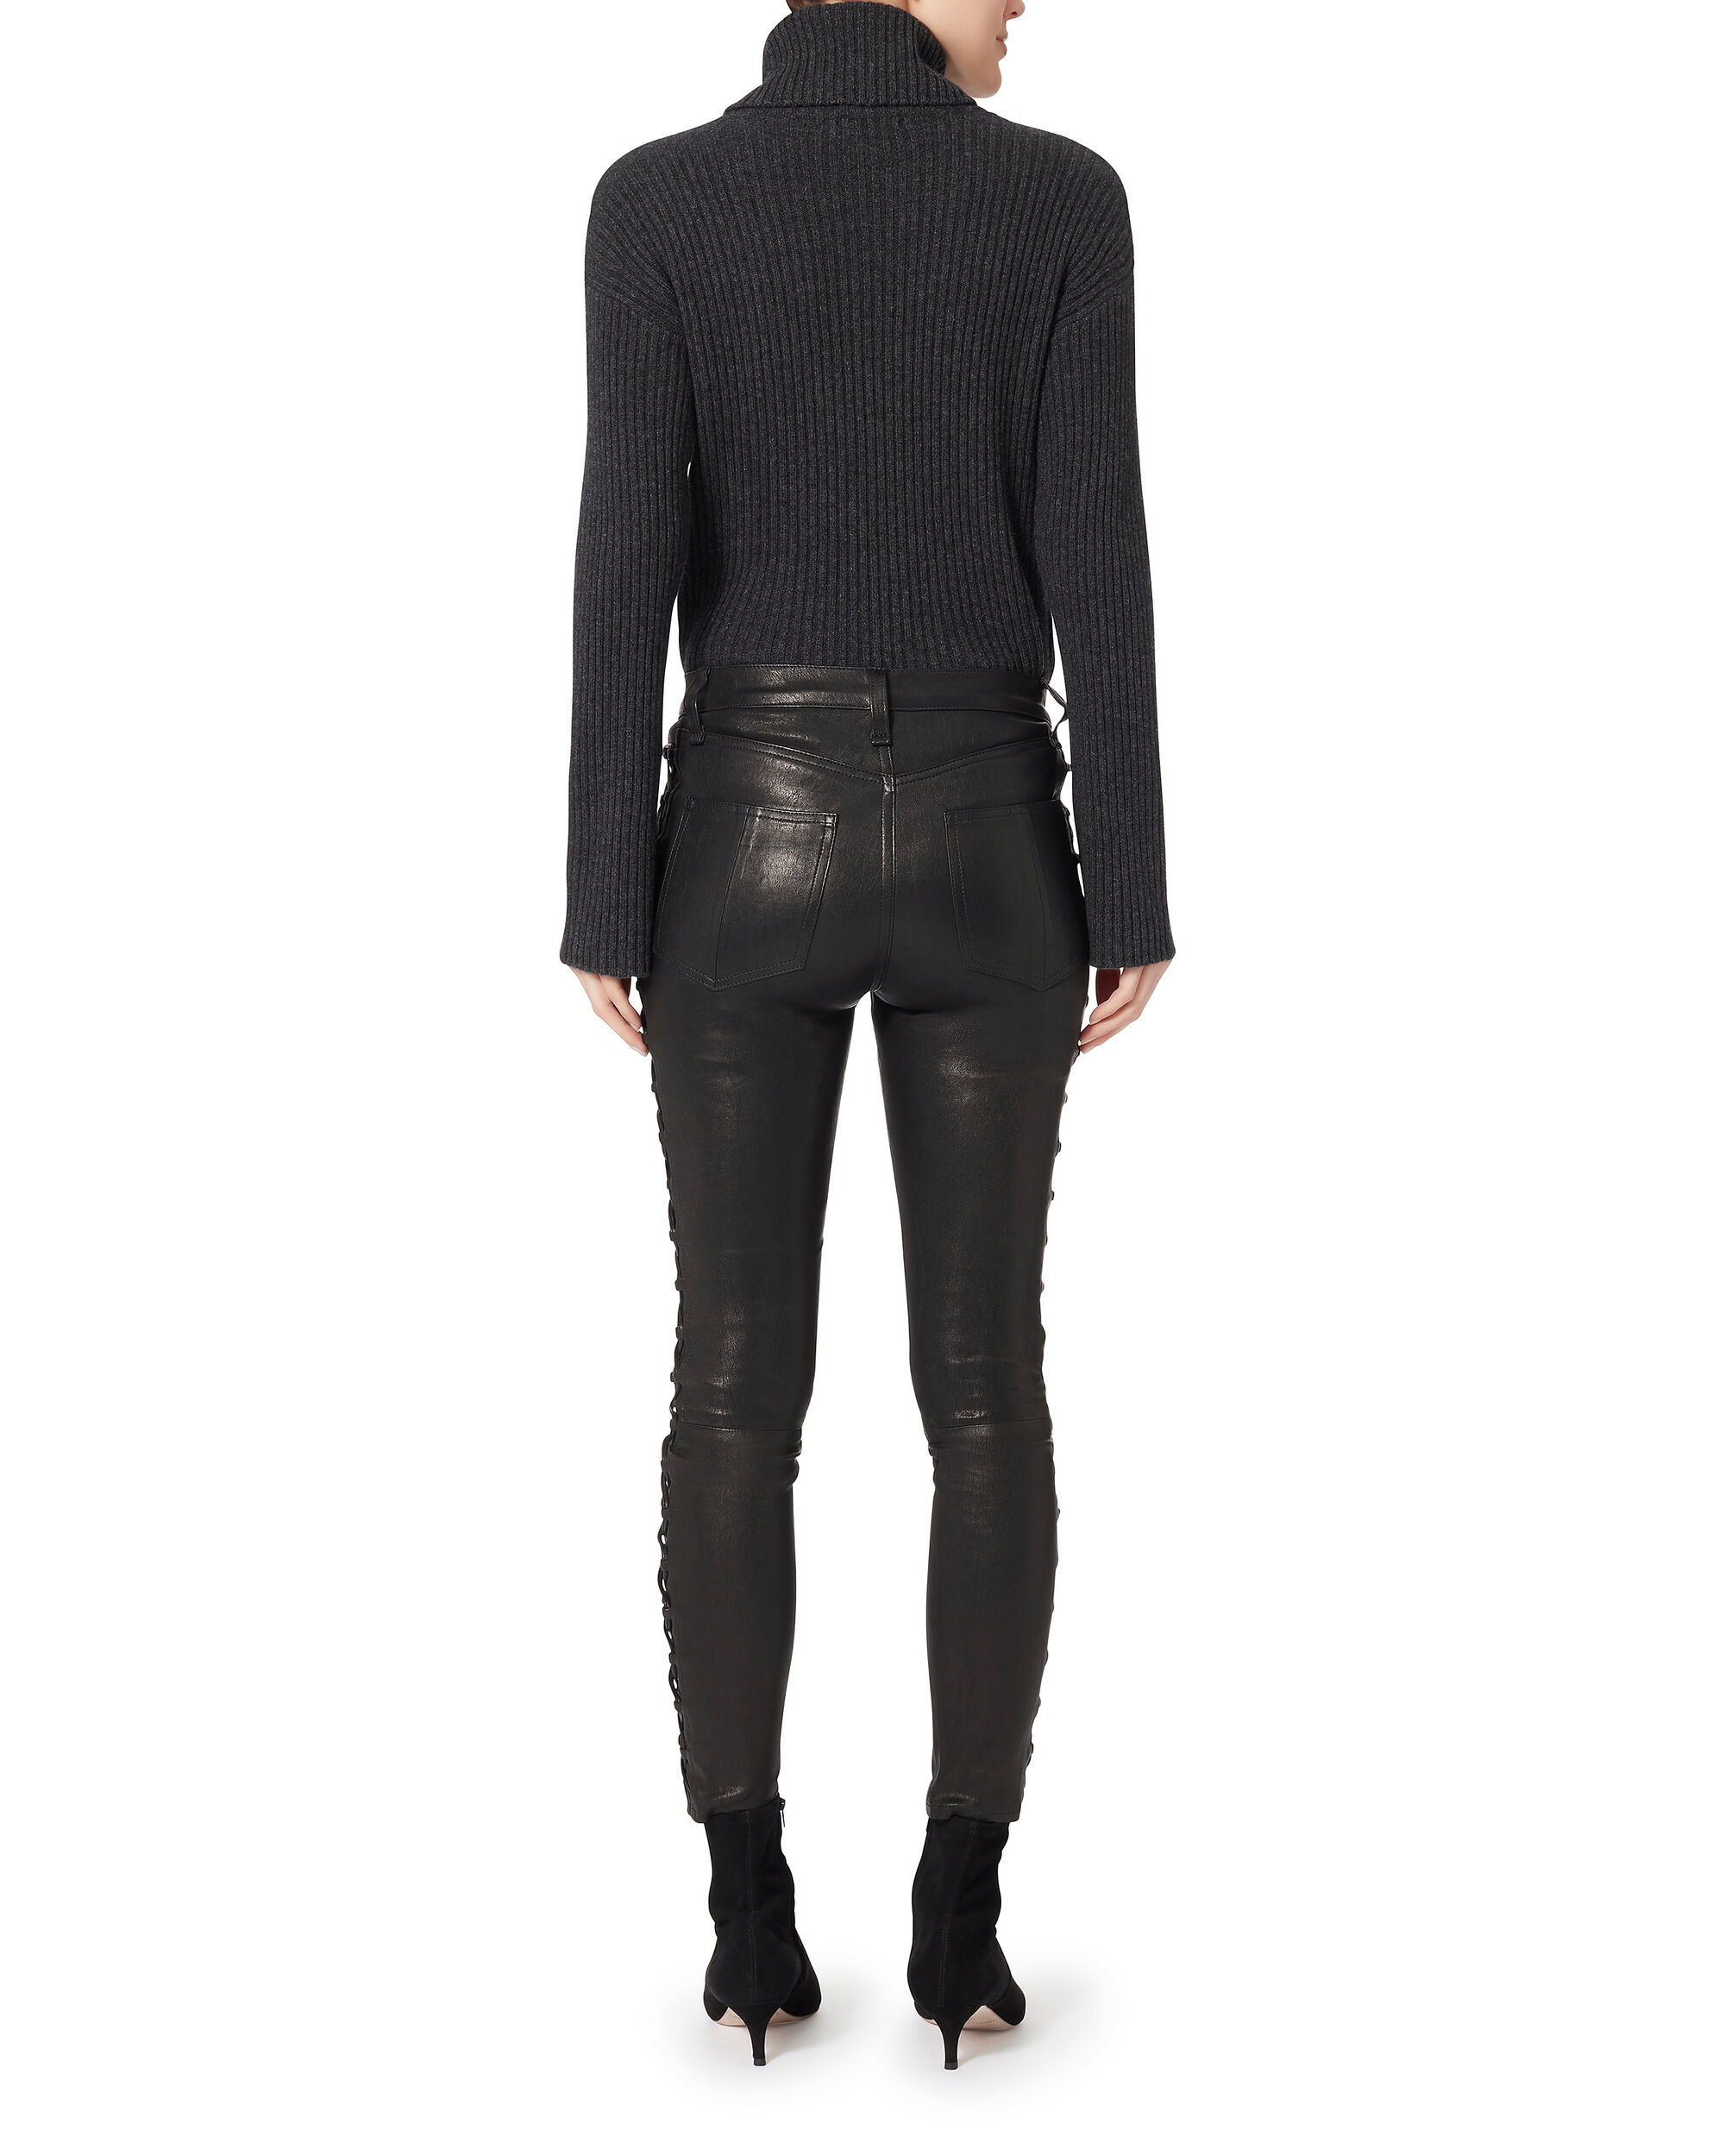 Kiku Side Lace-Up Leather Pants, BLACK, hi-res